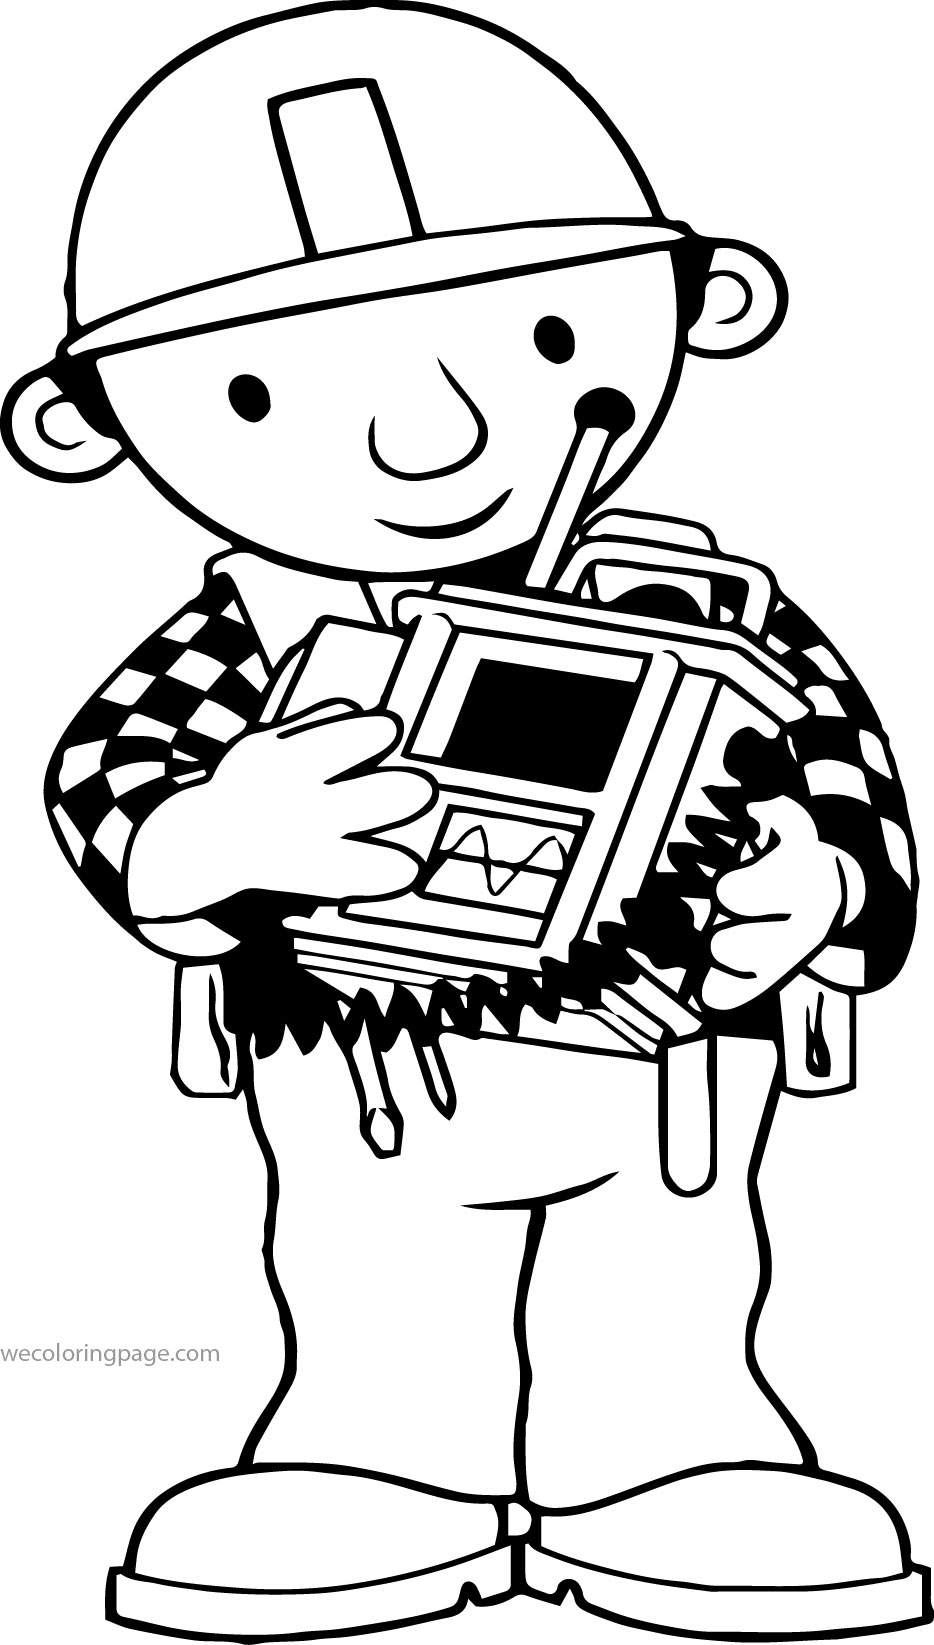 Bob The Builder Machine Coloring Page